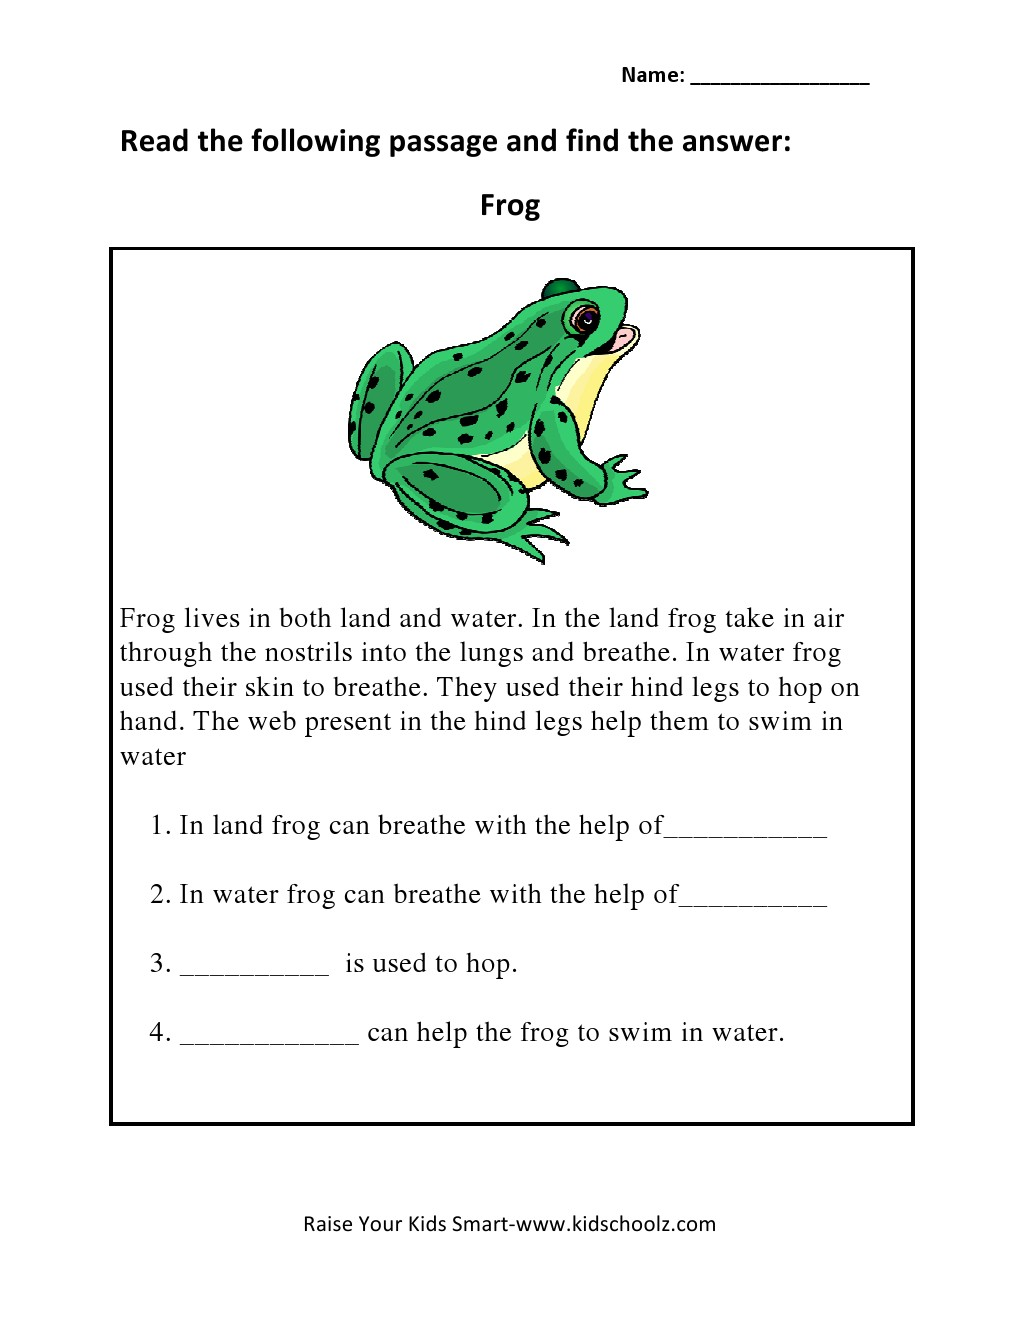 Workbooks water cycle worksheets for grade 2 : Grade 3 - Animals Read and Answers Worksheet 2 - Kidschoolz